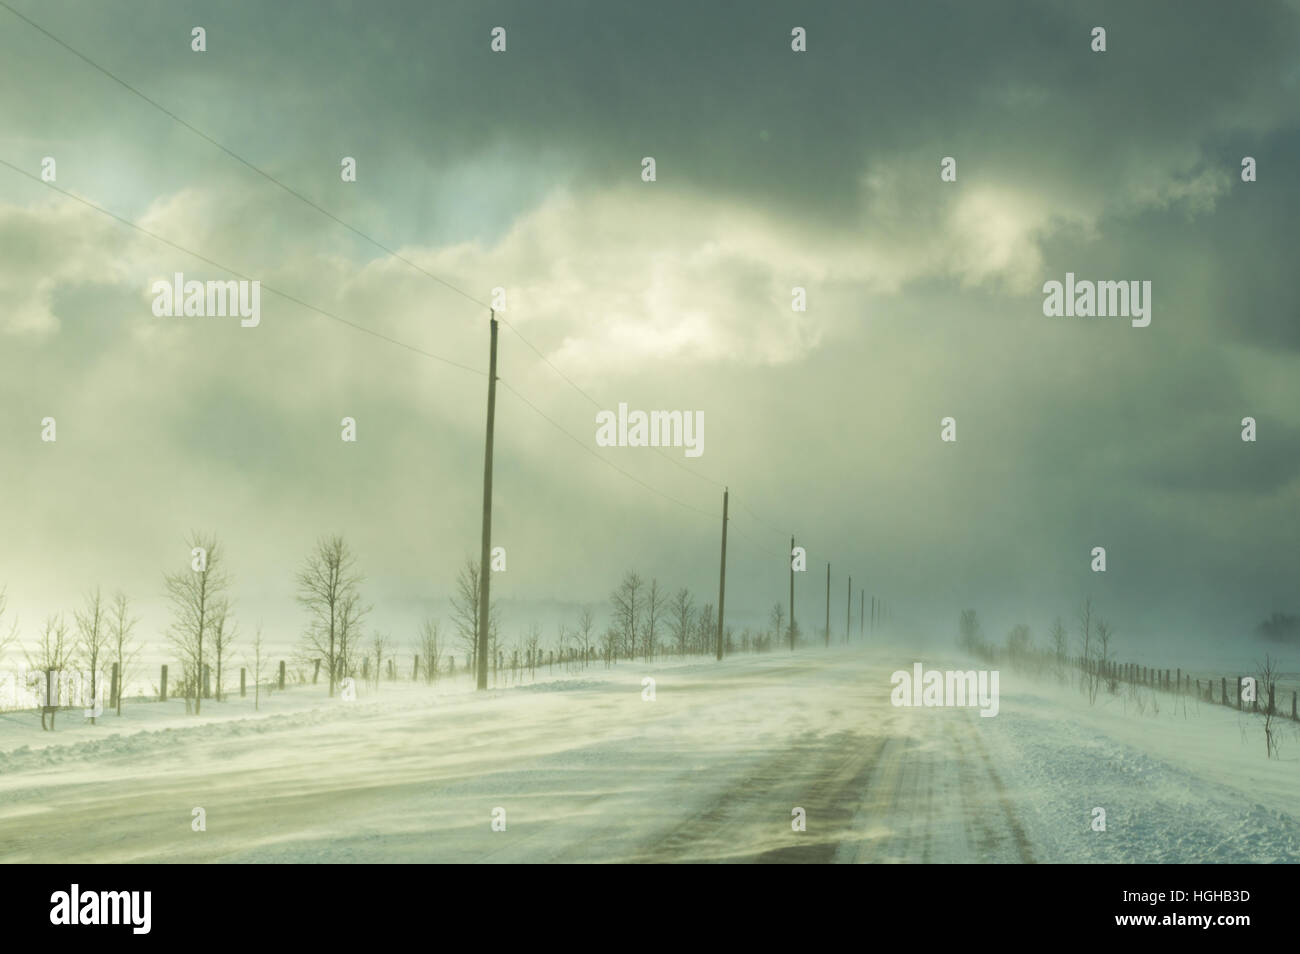 Highway with ground drifted snow illuminated by sunshine during a winter snow squall. Showing trees and power lines - Stock Image